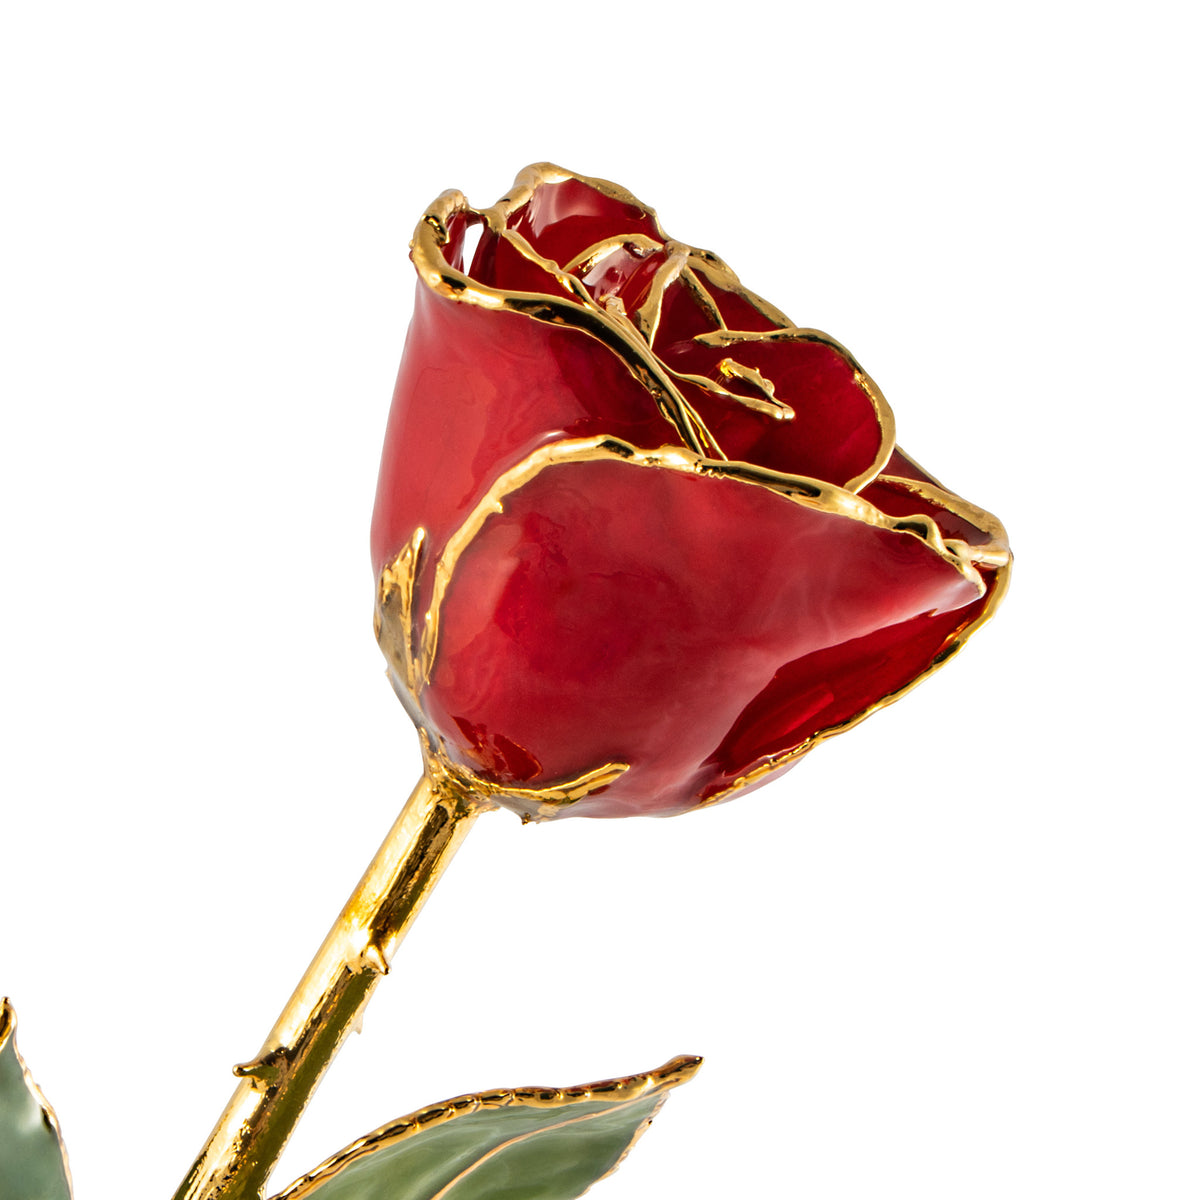 24K Gold Trimmed Forever Rose with Red Petals. View of Stem, Leaves, and Rose Petals and Showing Detail of Gold Trim